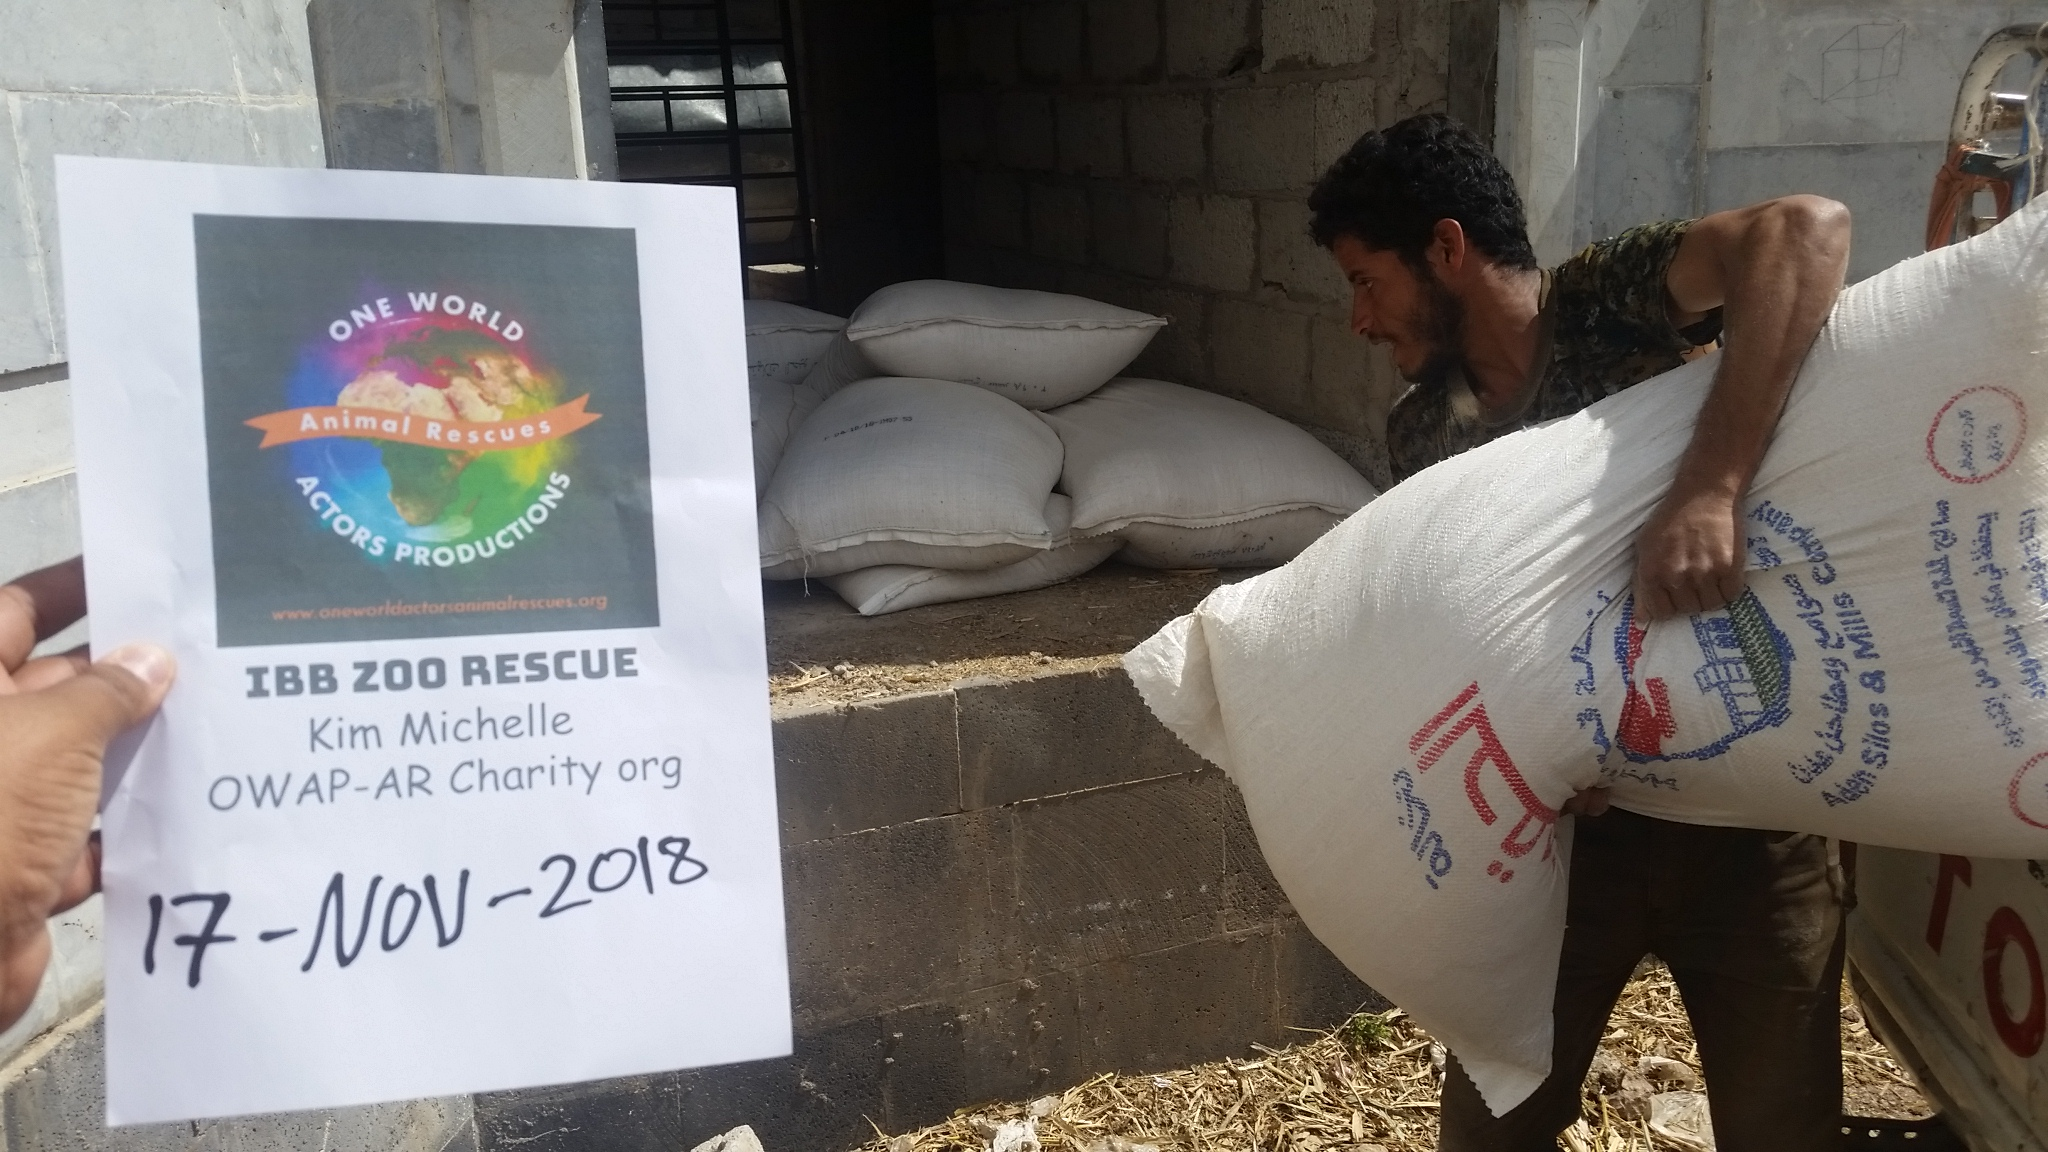 ibb zoo stocking the hangar with OWAP-AR delivery special feed by Hisham from OWAP-AR giving 17 NOV 2018.jpg